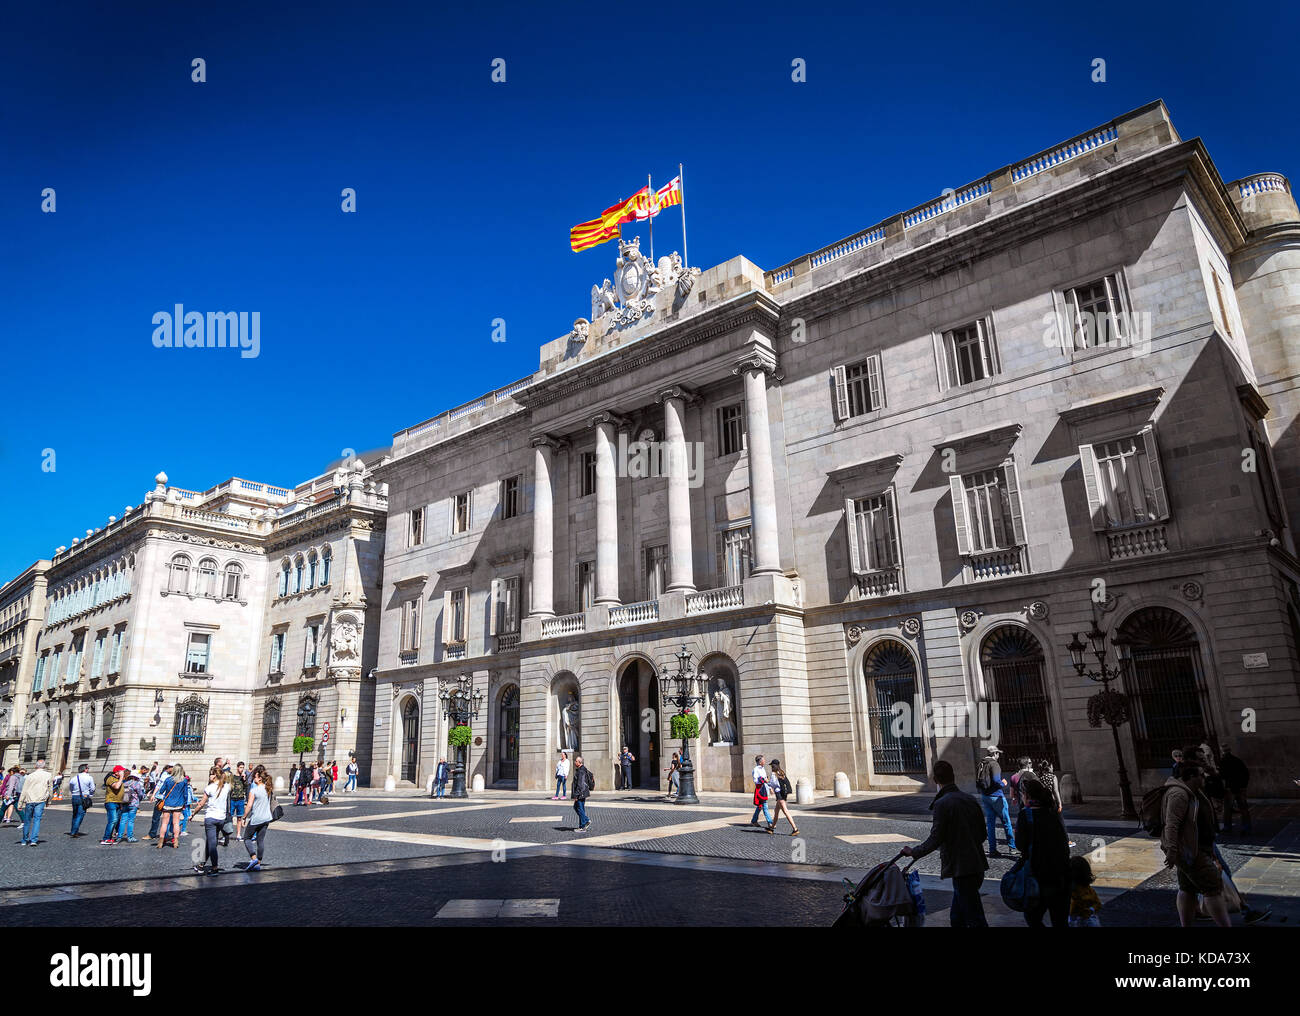 town hall building of the Catalan government at Plaza de Sant Jaume barcelona spain - Stock Image